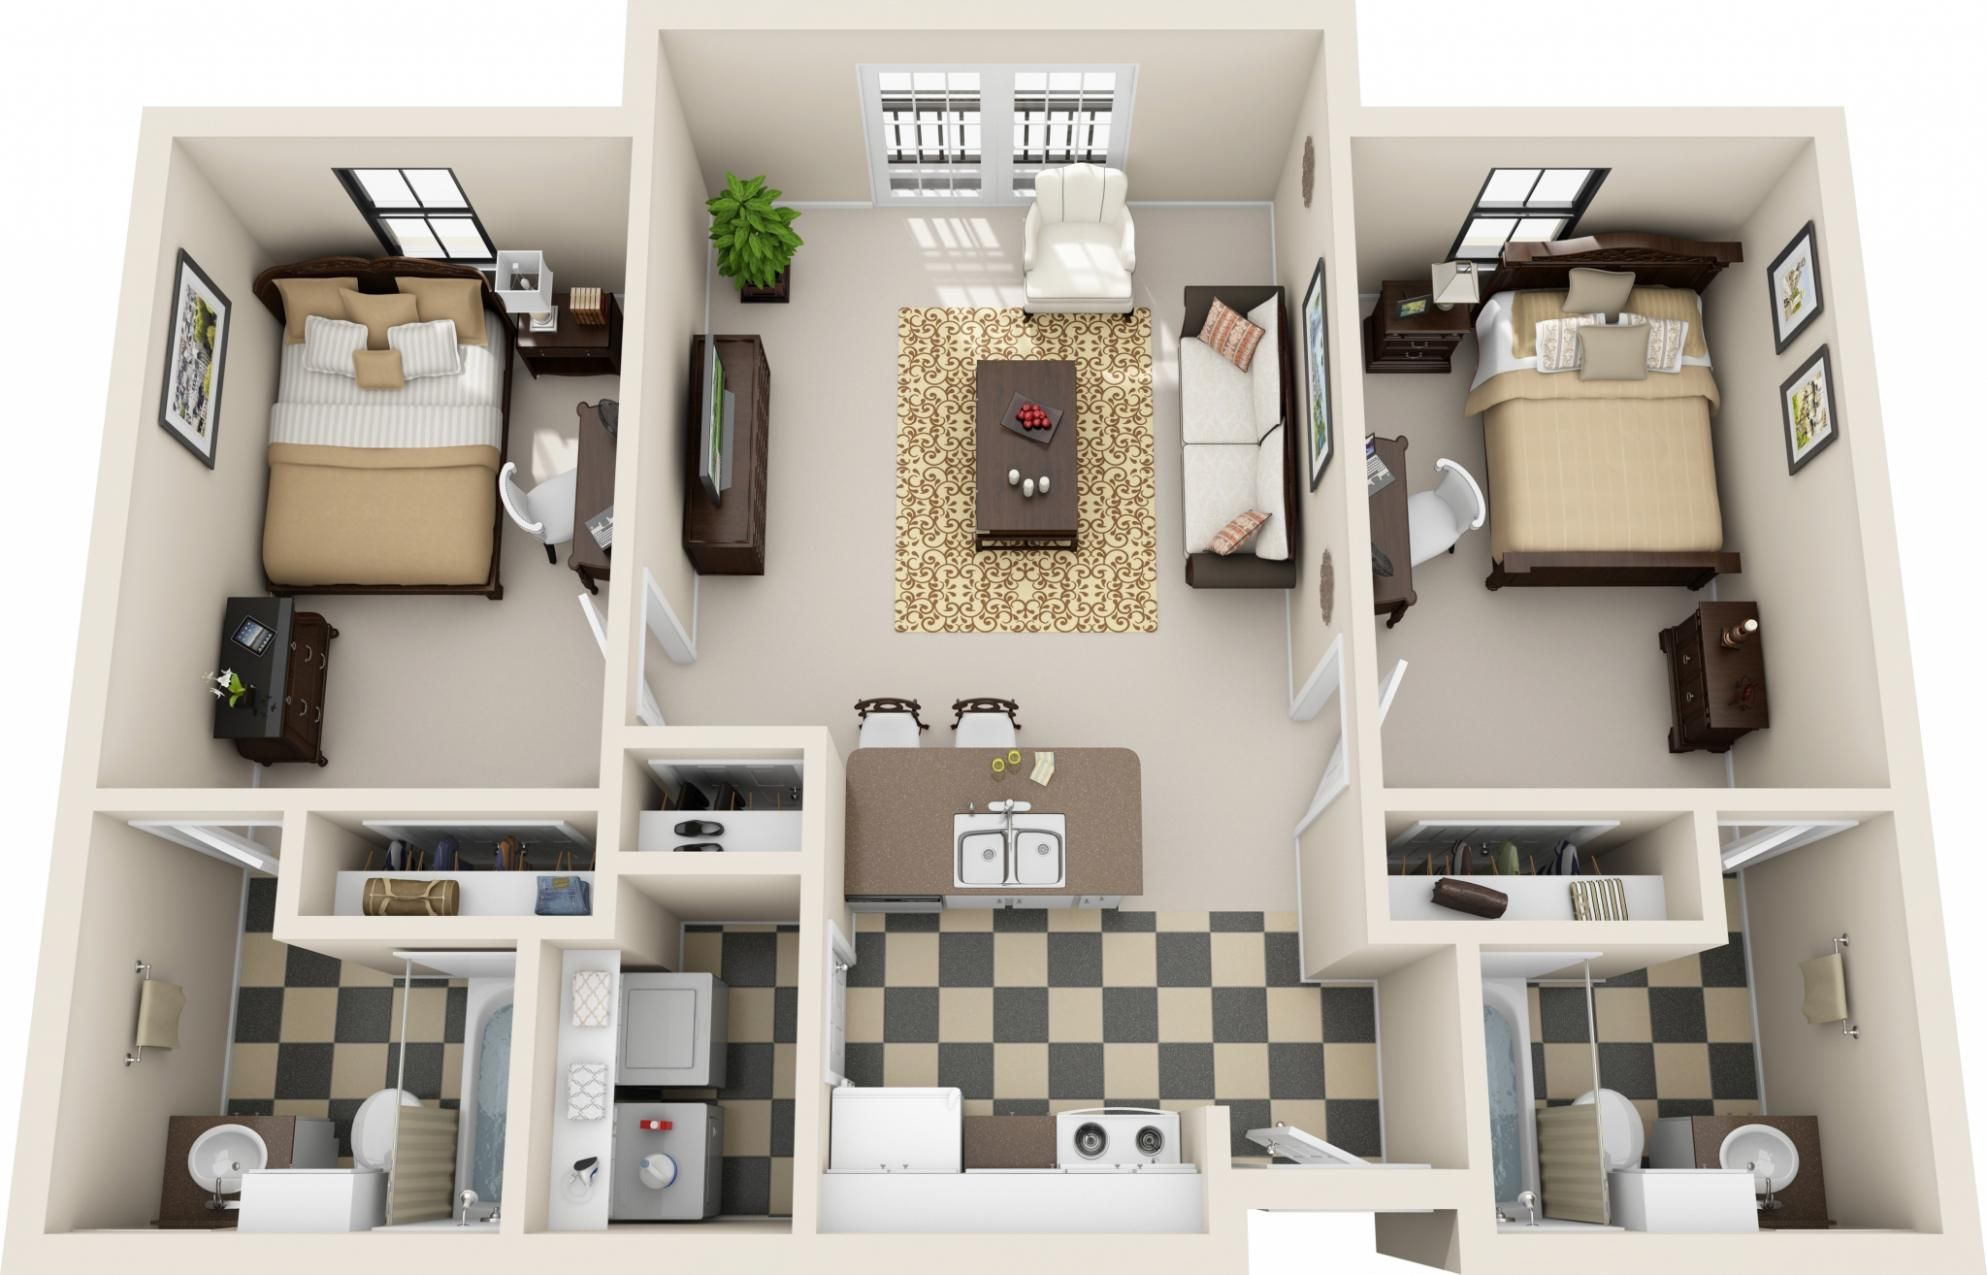 Bed 2 Bath 830 Sq Ft Floor Plan La Apartment